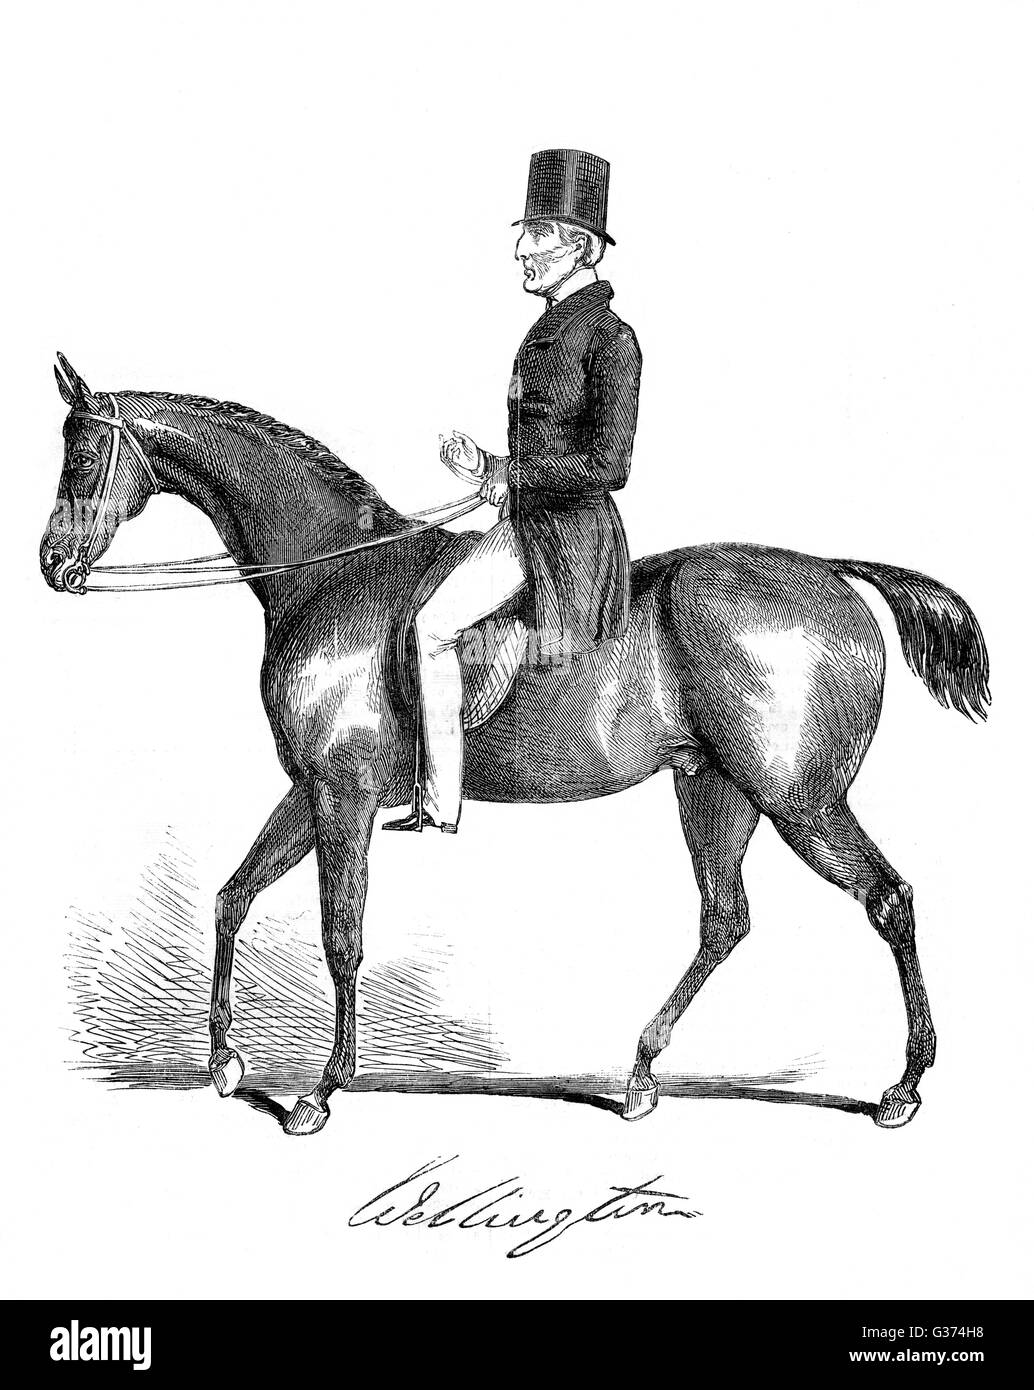 ARTHUR WELLESLEY, duke of  WELLINGTON soldier and statesman, riding  two years before his death       Date: 1769 - Stock Image